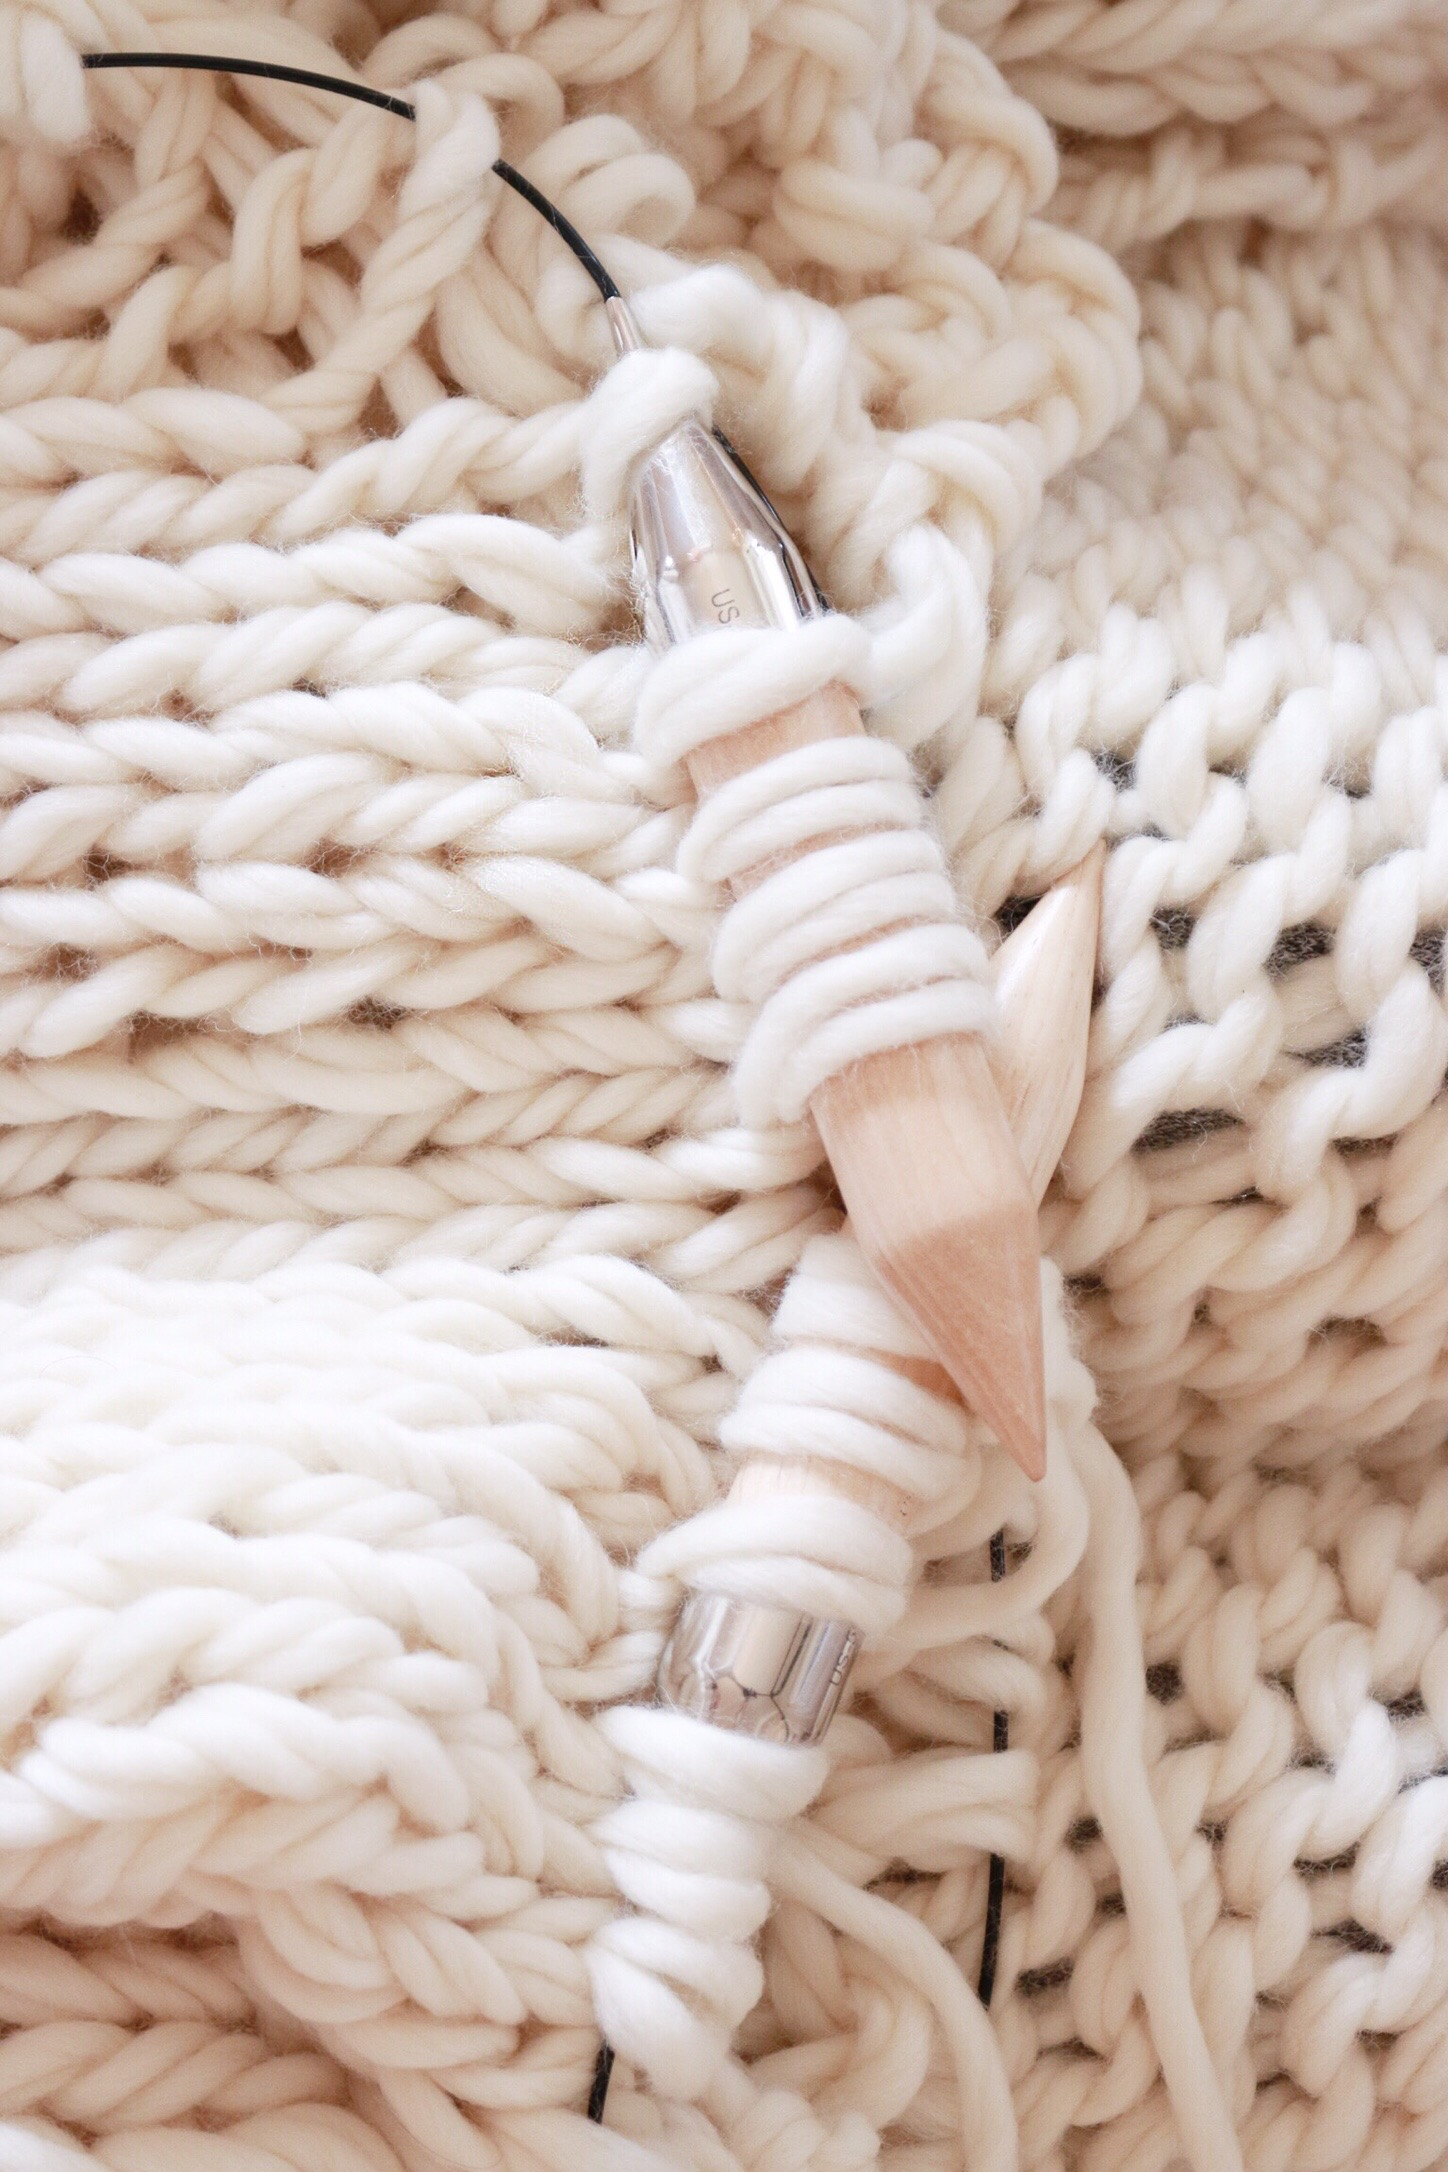 This intricate knitting pattern isn't hard to master after some practice, and worth it when you complete this cozy throw blanket